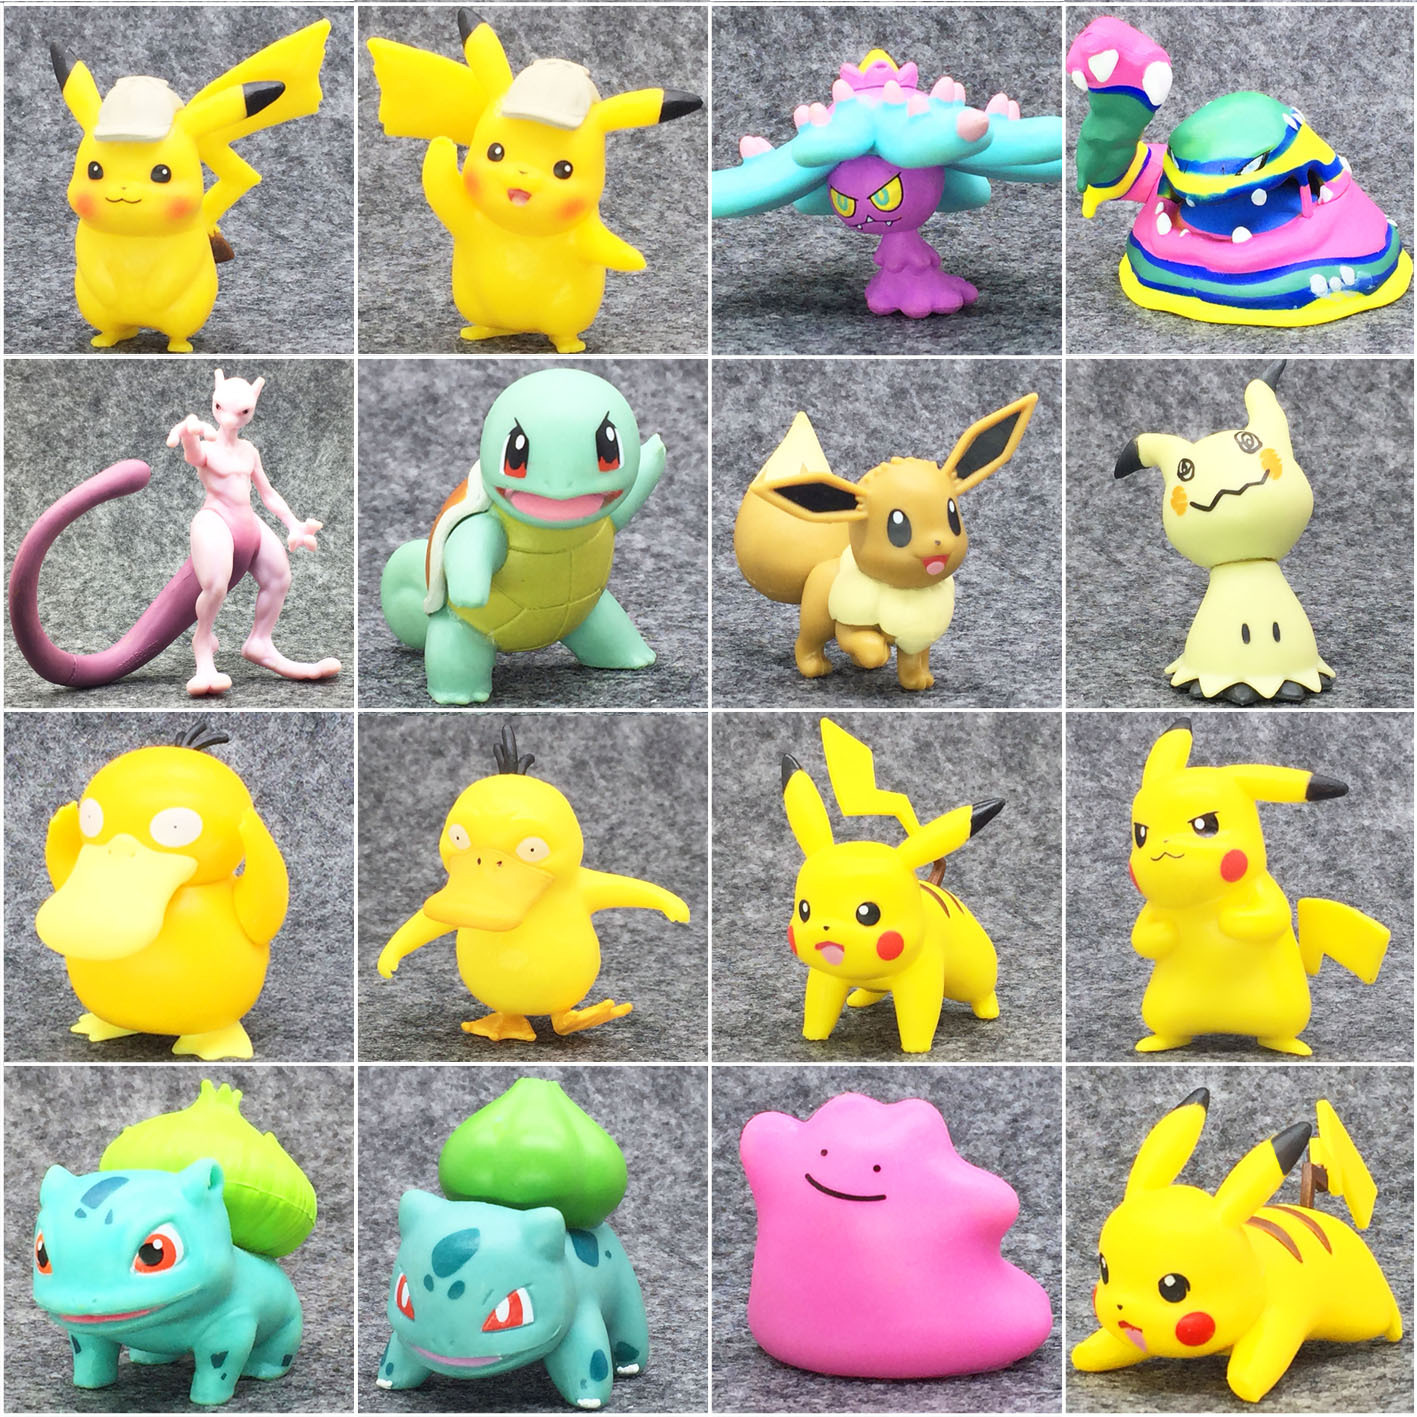 Takara Tomy Pokemon  Detective Pikachu Psyduck Mewtwo Bulbasaur Squirtle Eevee Anime Action & Toy Figures Model